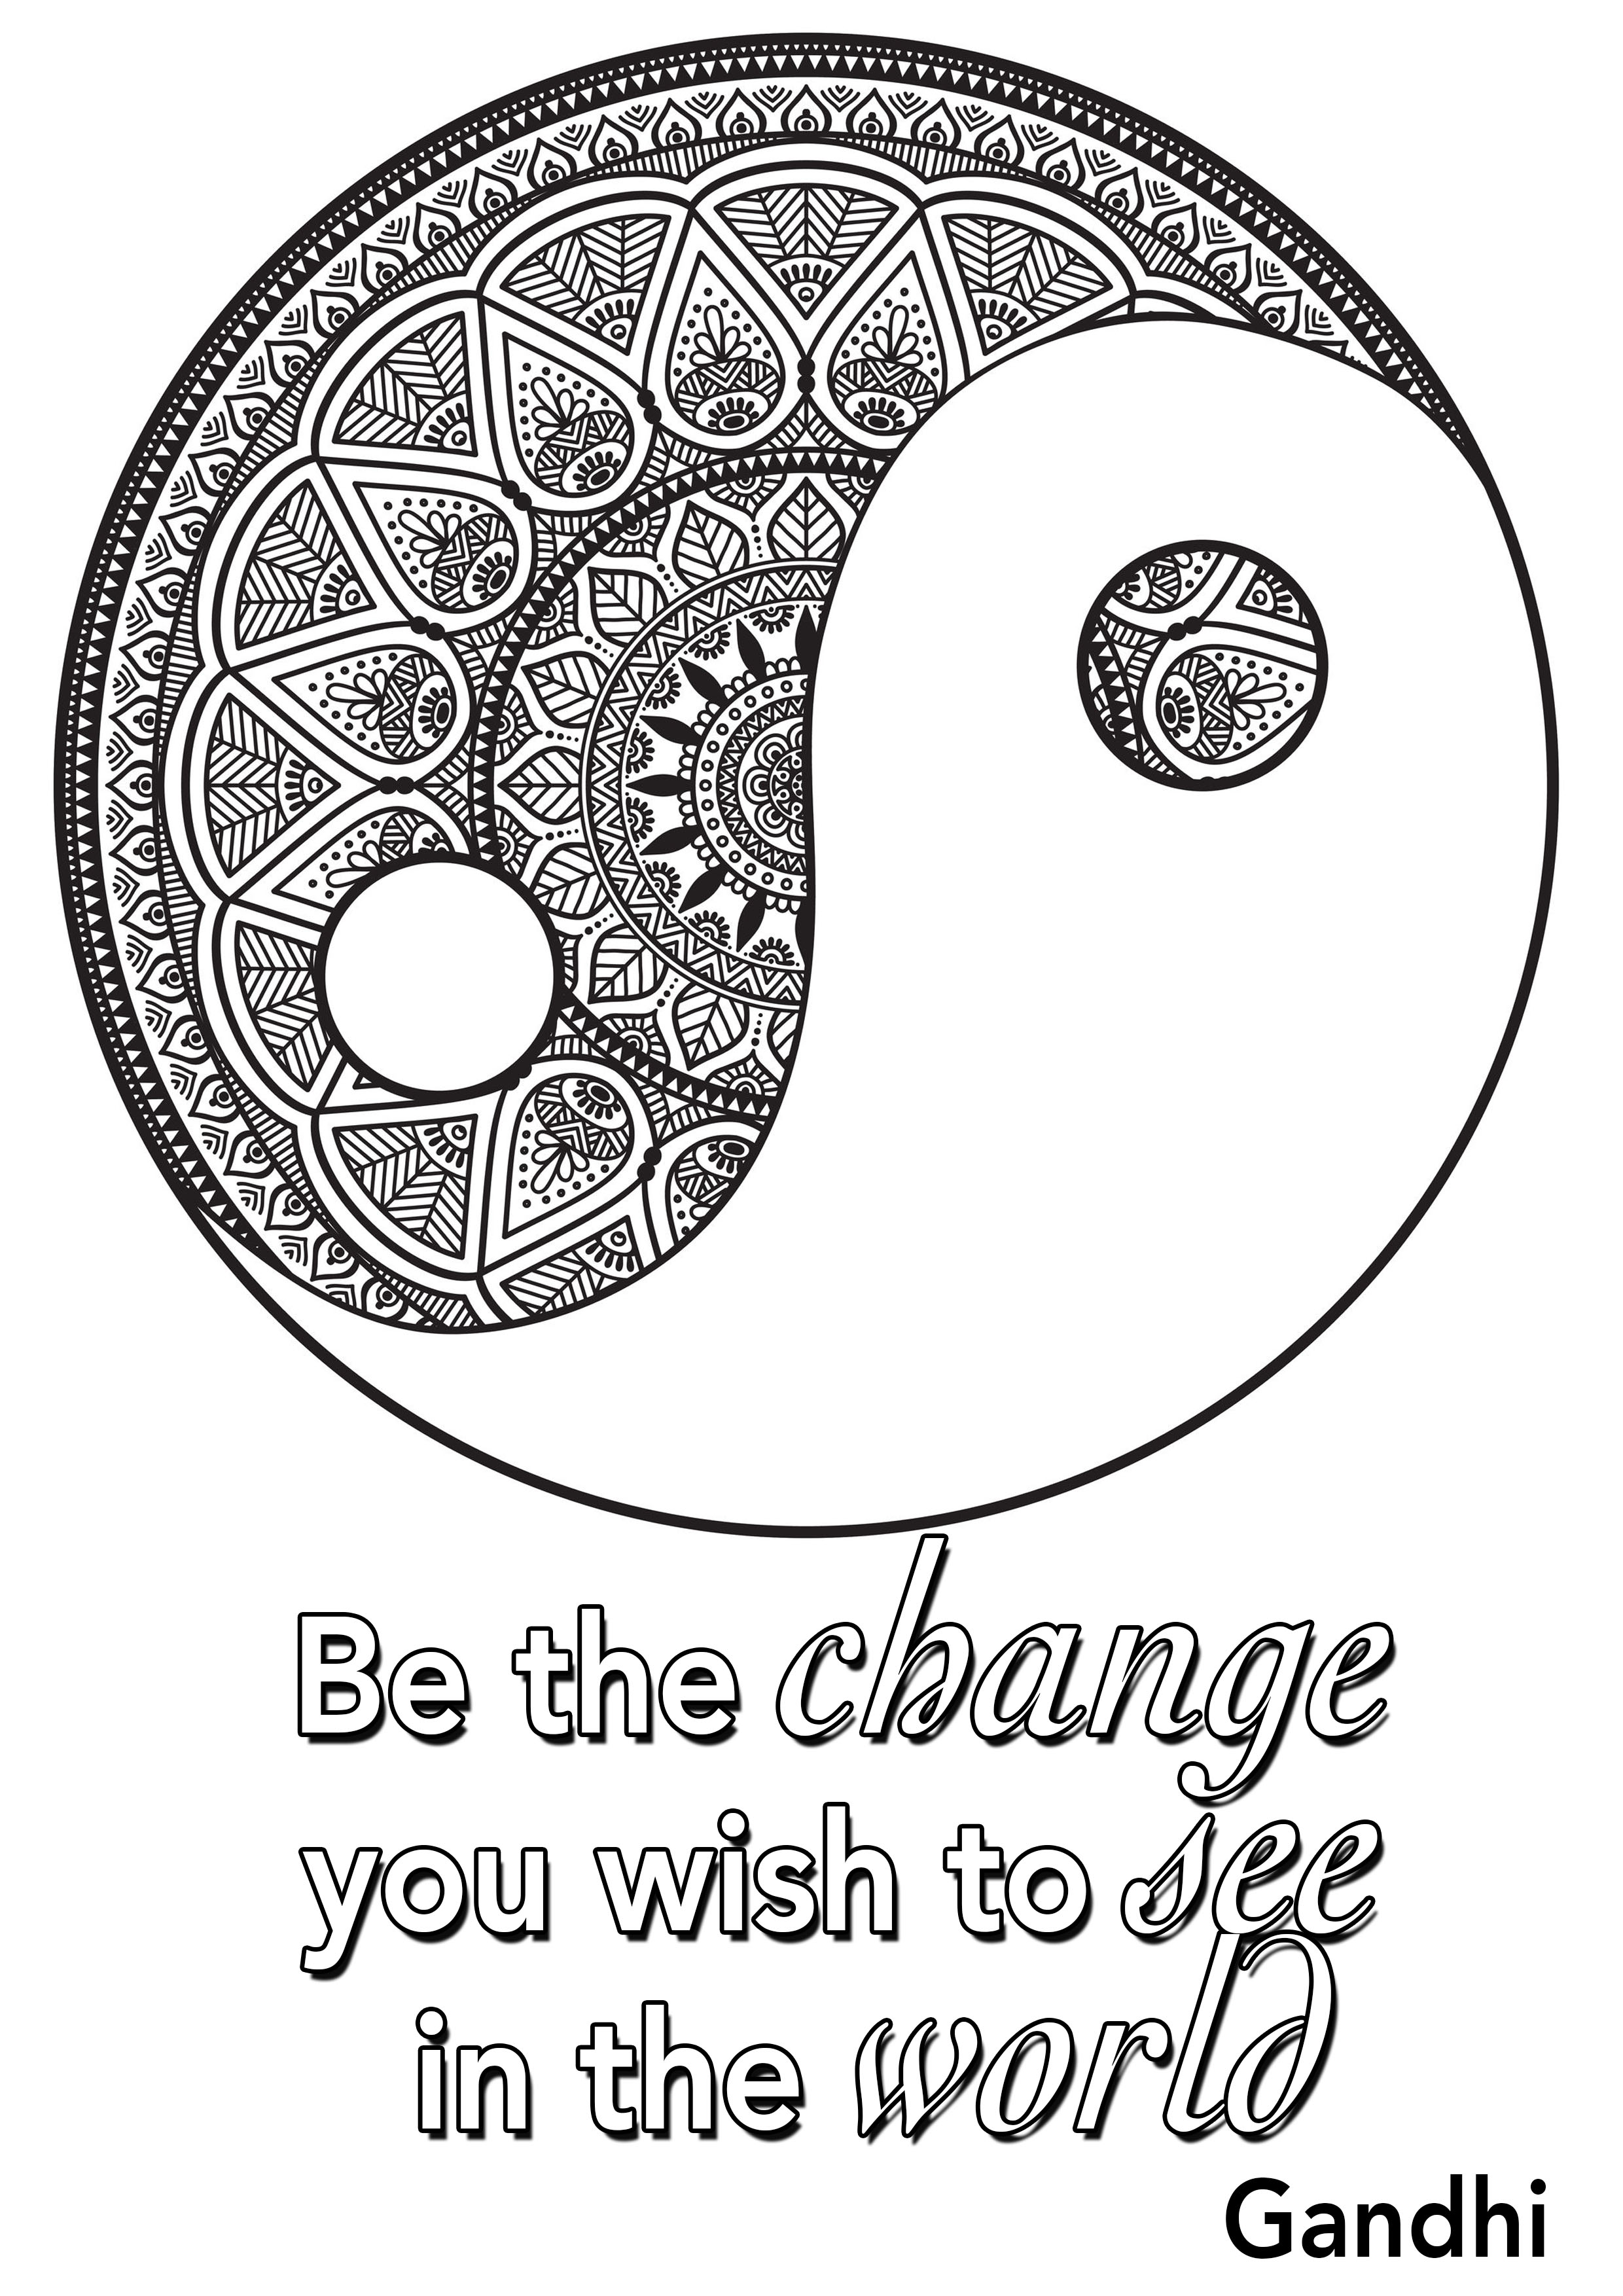 Quotes Coloring Pages Coloring Pages For Adults Justcolor Page 2